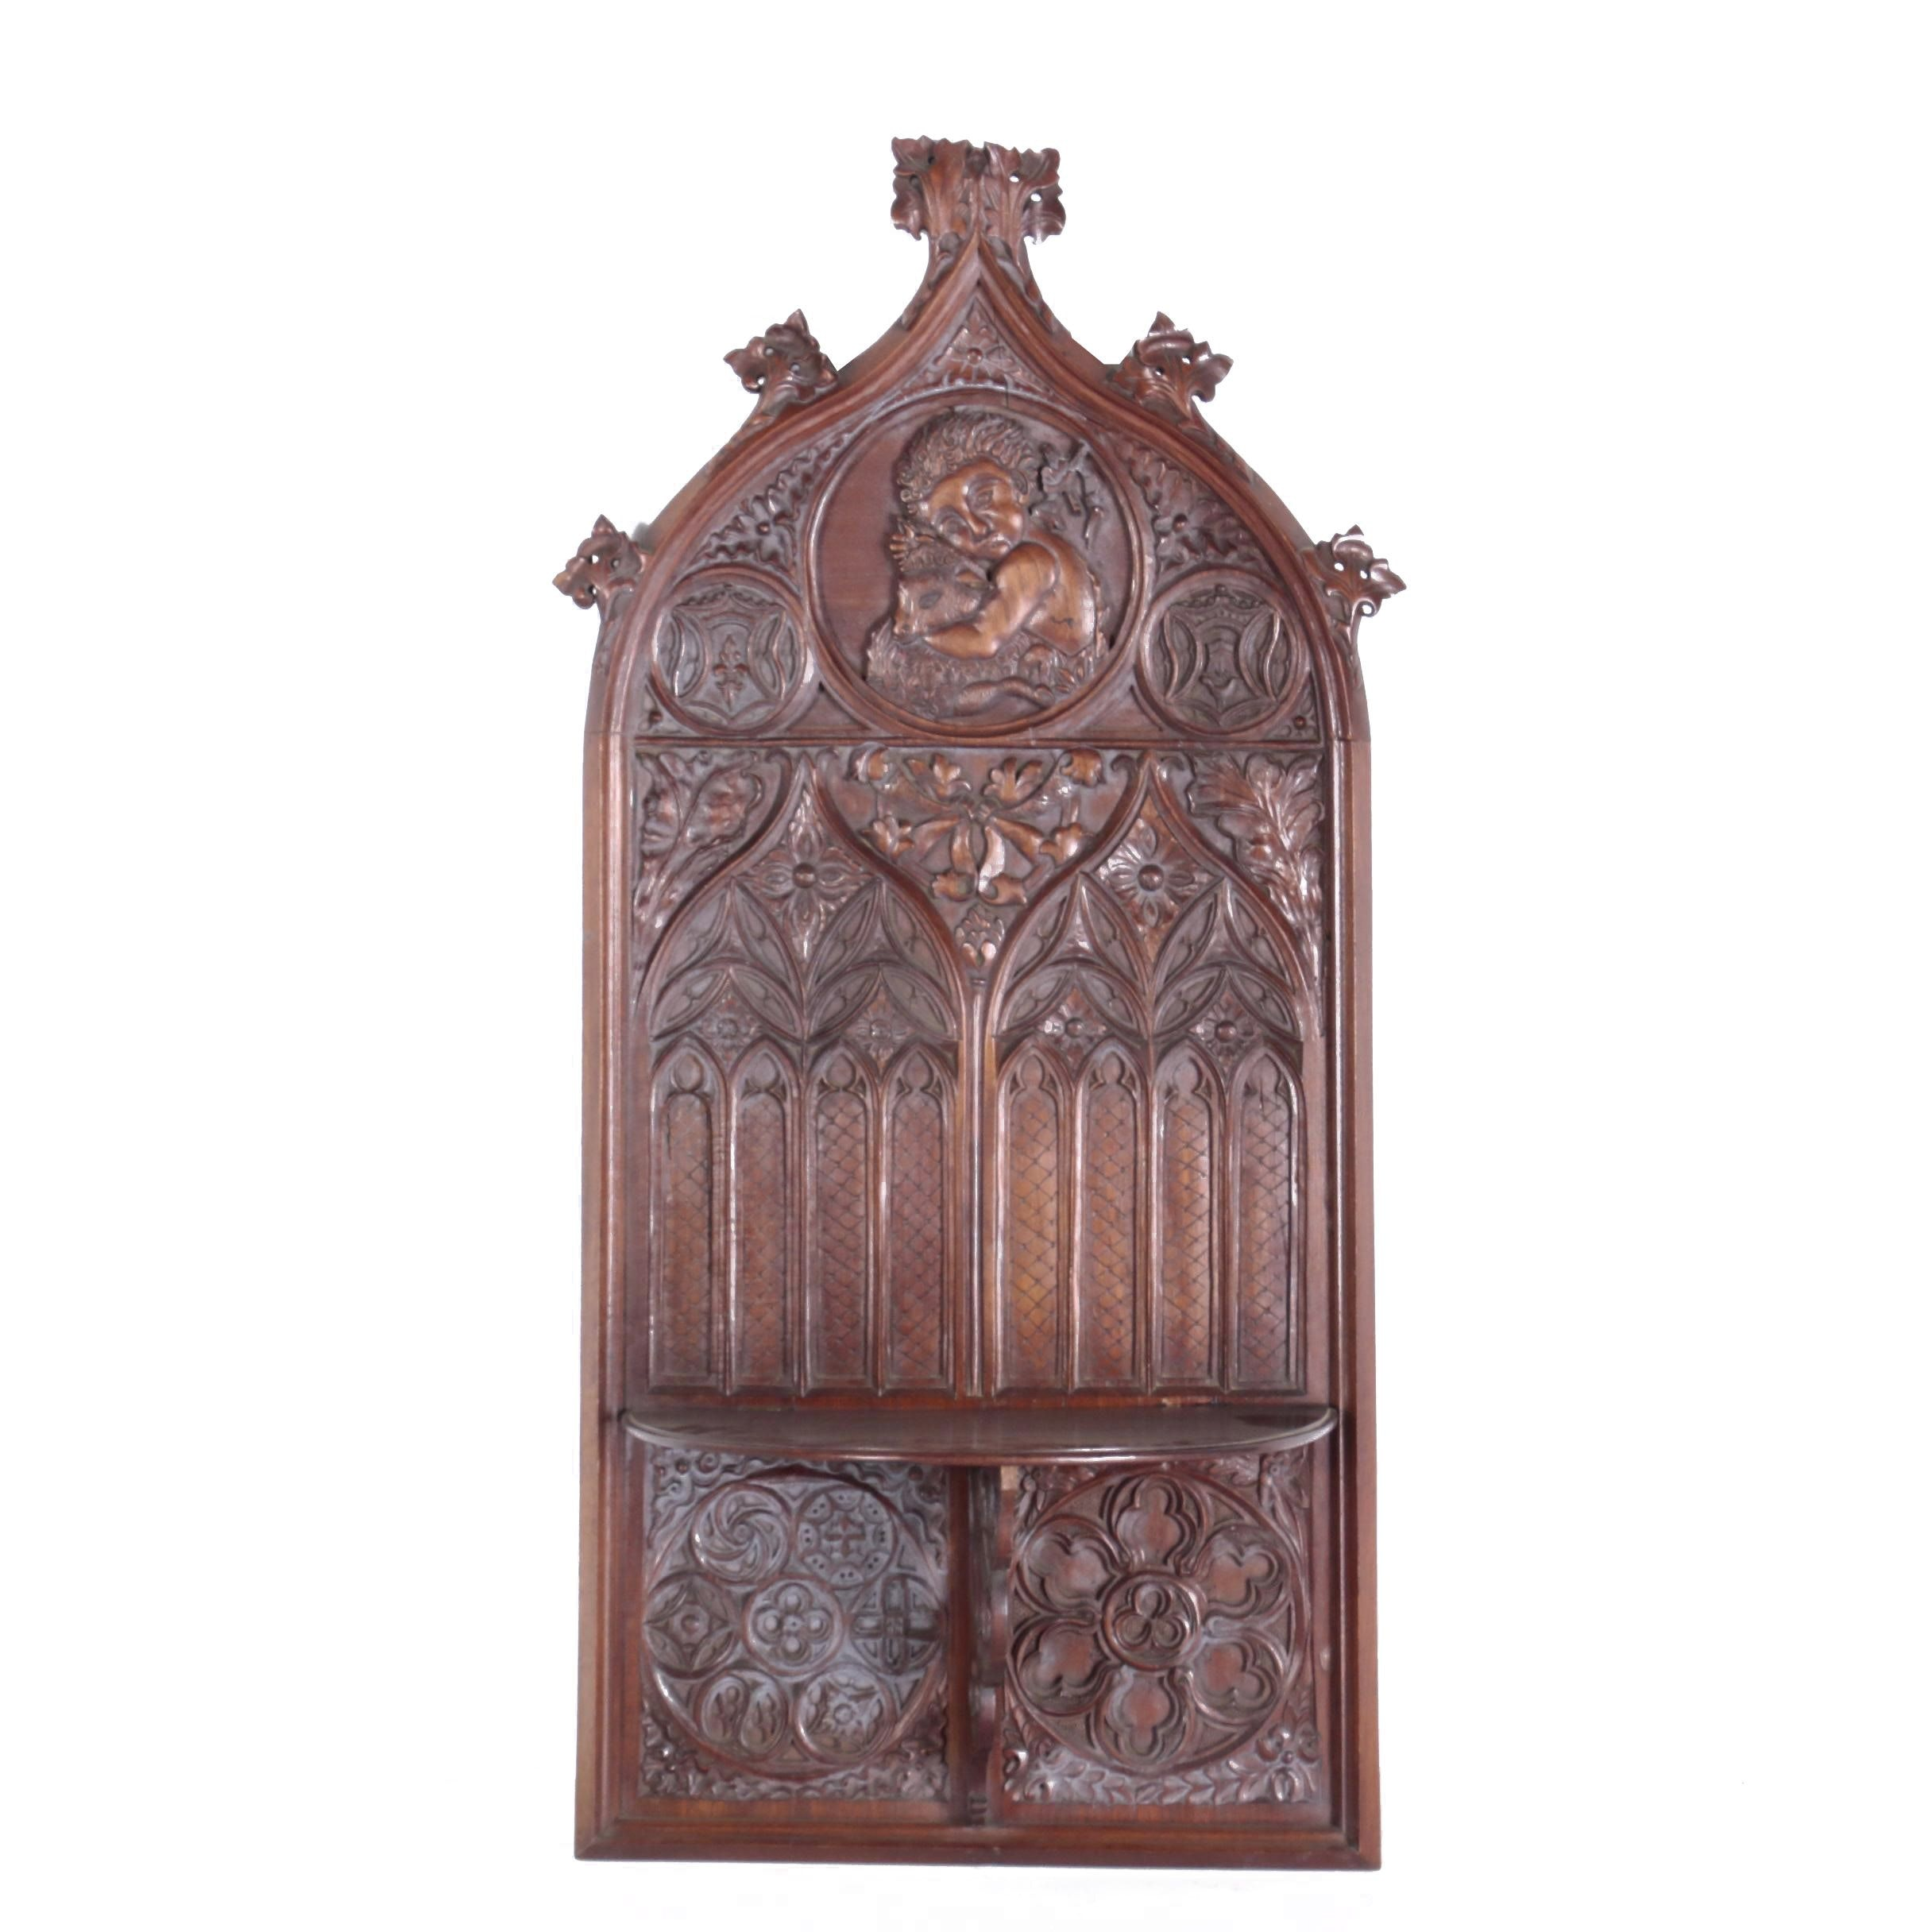 Gothic Revival Walnut Ecclesiastical Wall Panel with Folding Shelf